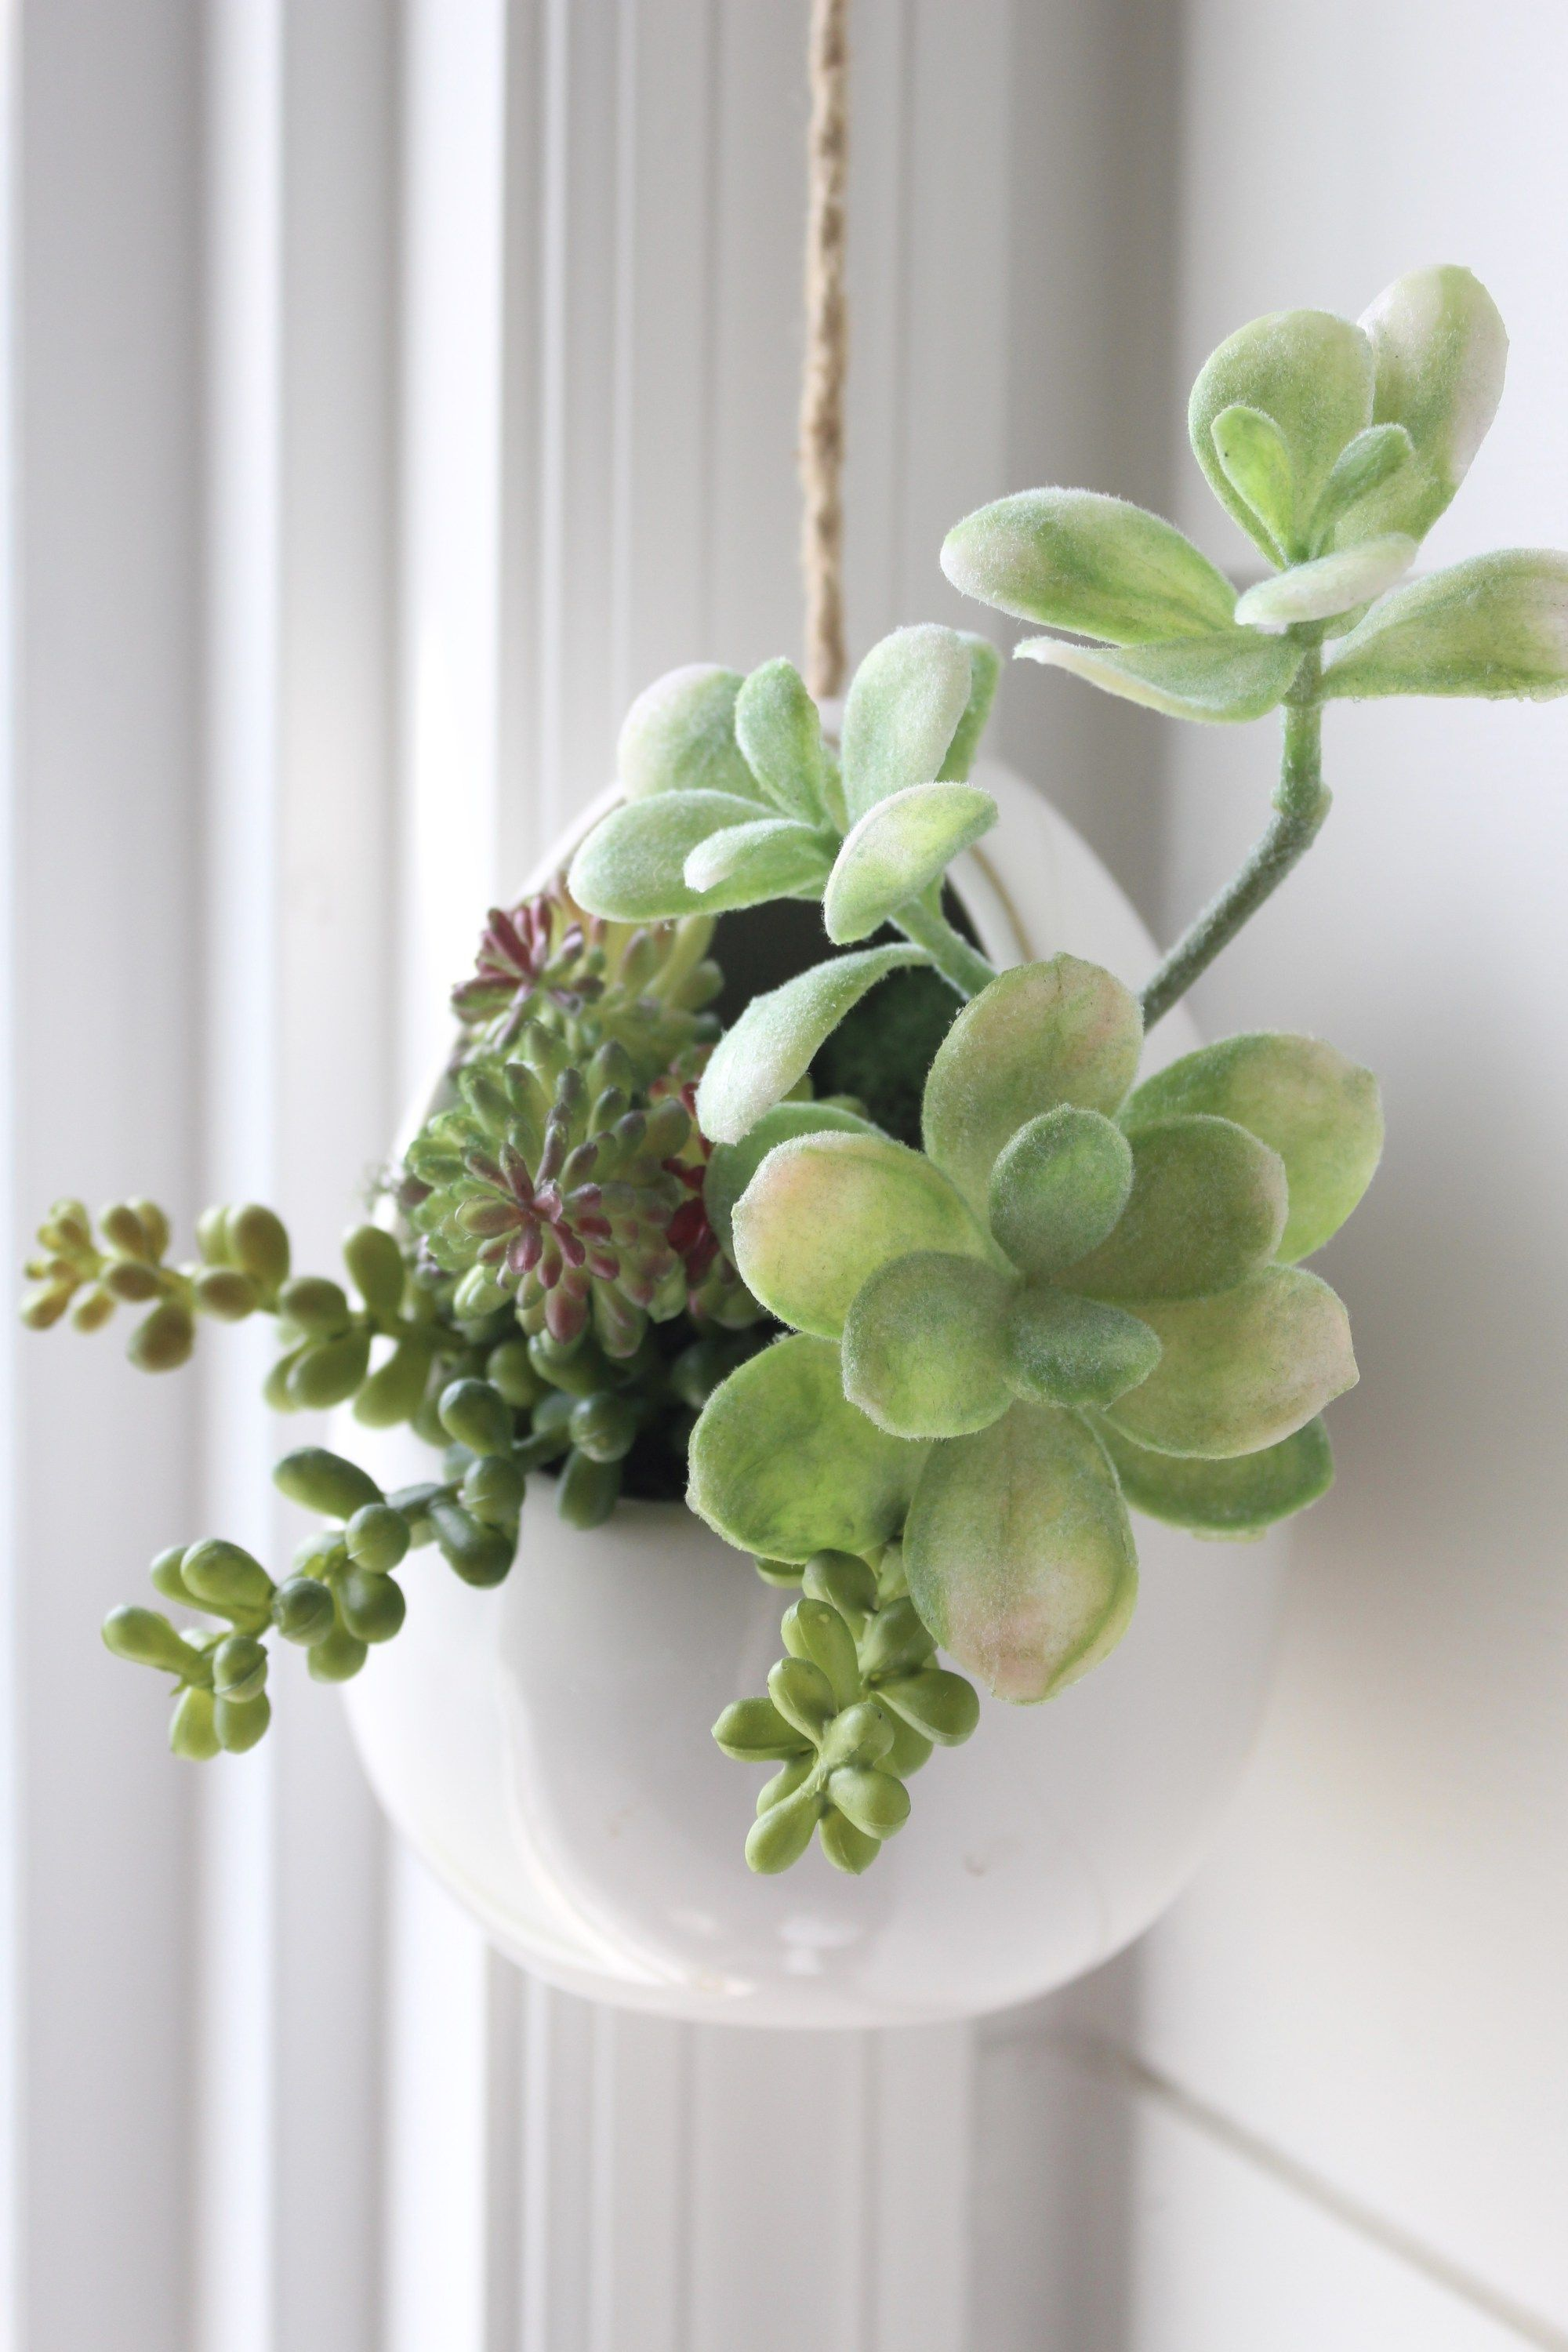 Modern Farmhouse Bathroom Remodel Reveal Faux Succulents Arrangements Succulents Decor Hanging Succulents